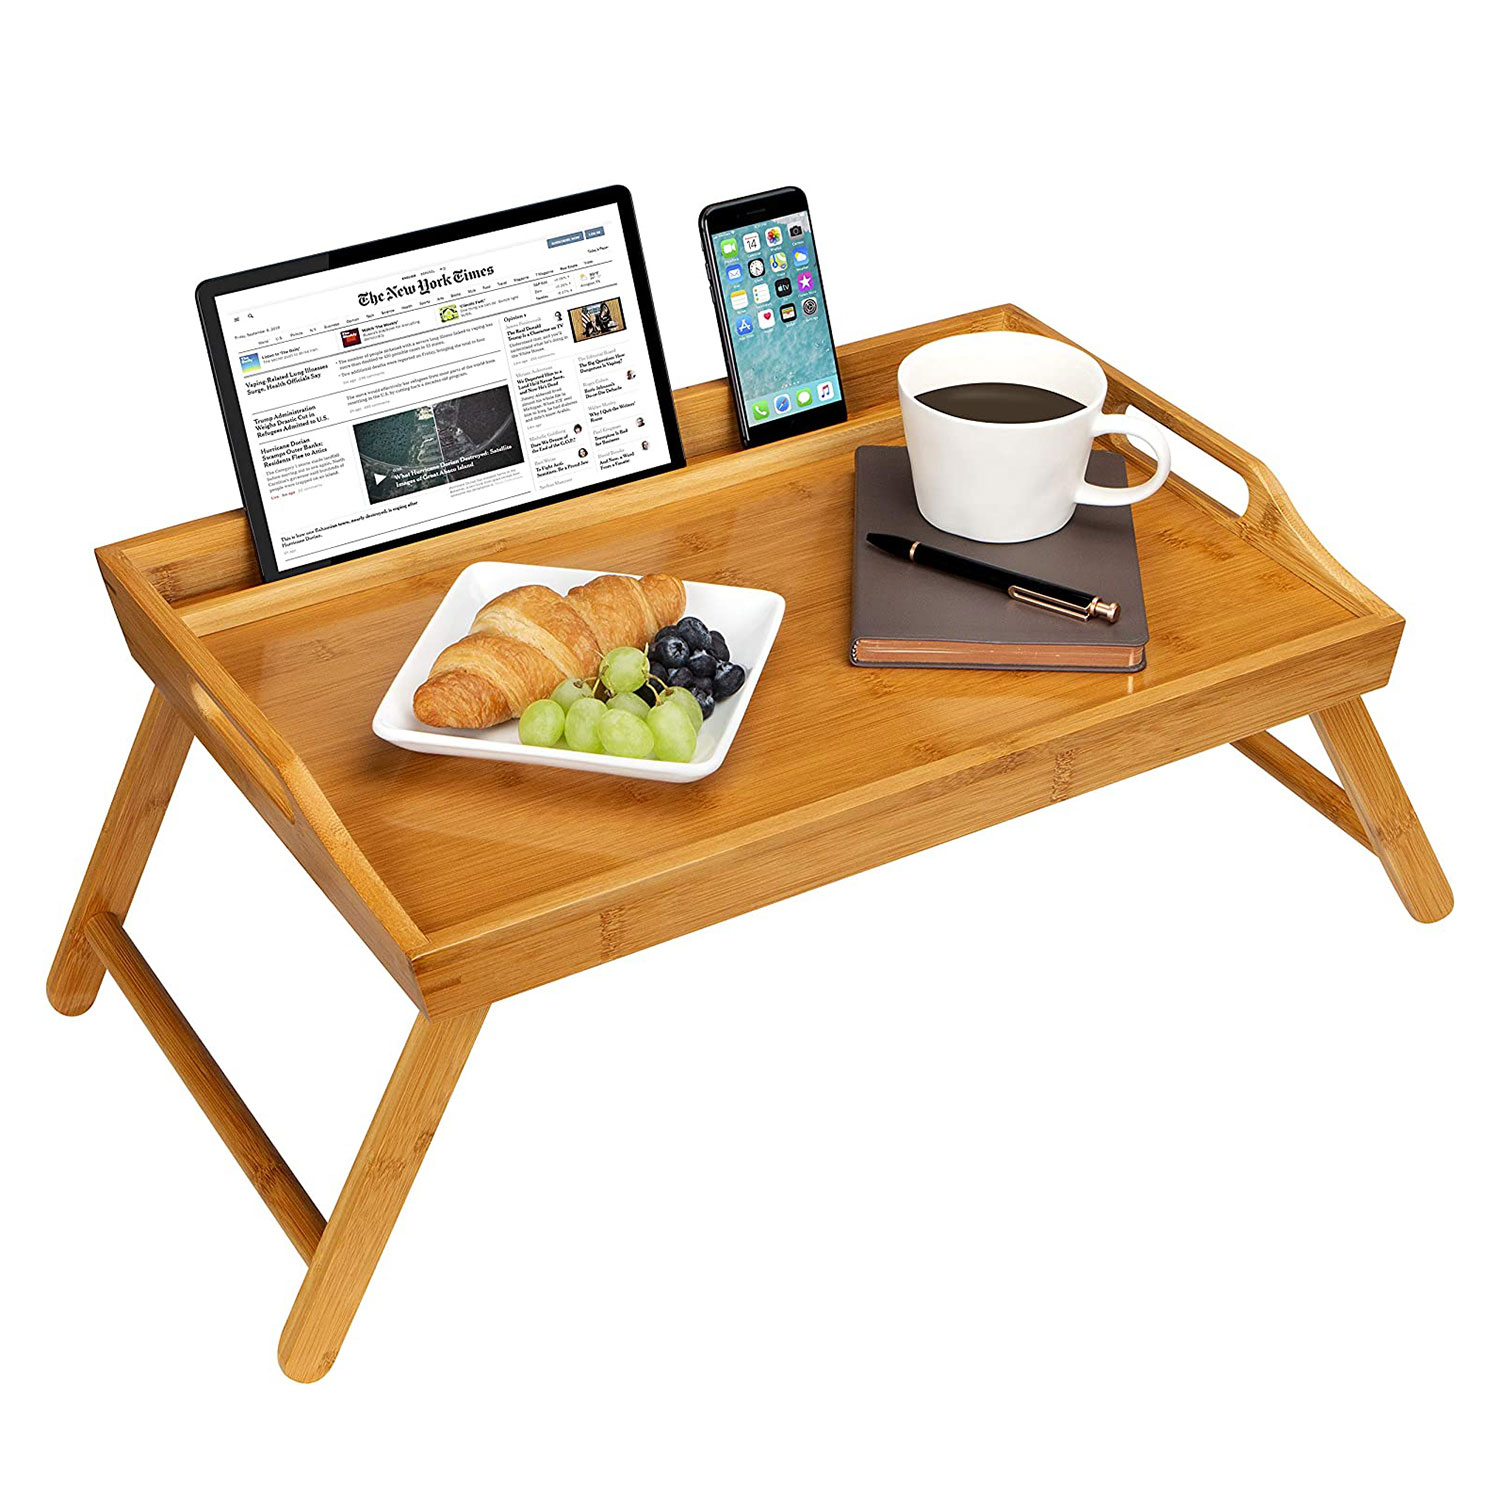 LapGear Media Bed Tray with Phone Holder